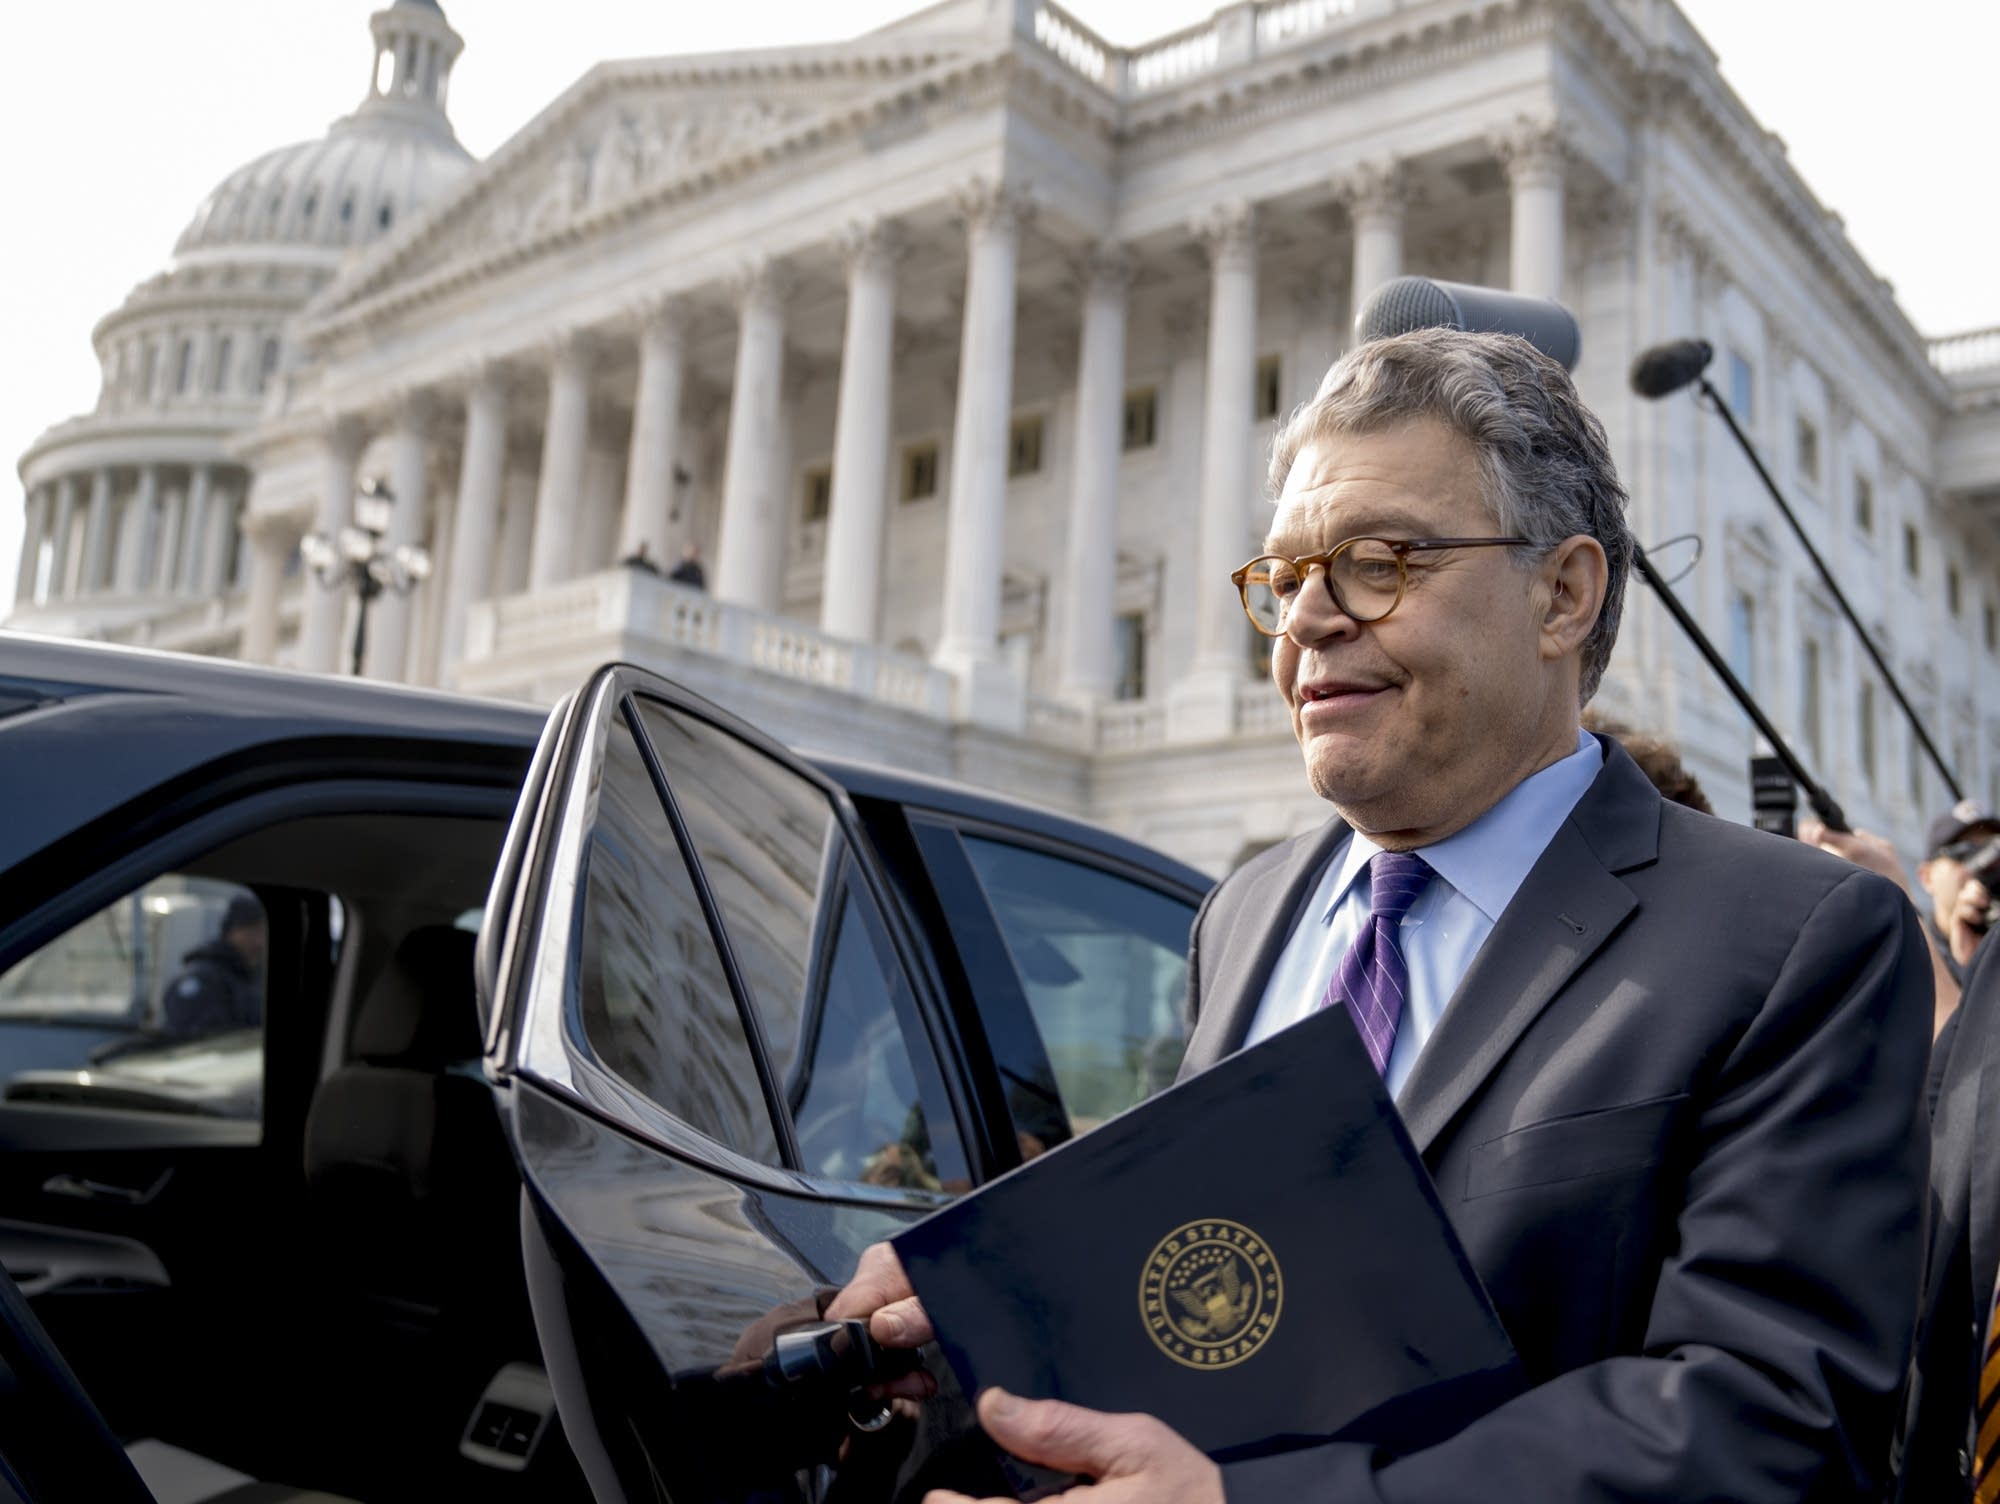 Franken to leave Senate on January 2